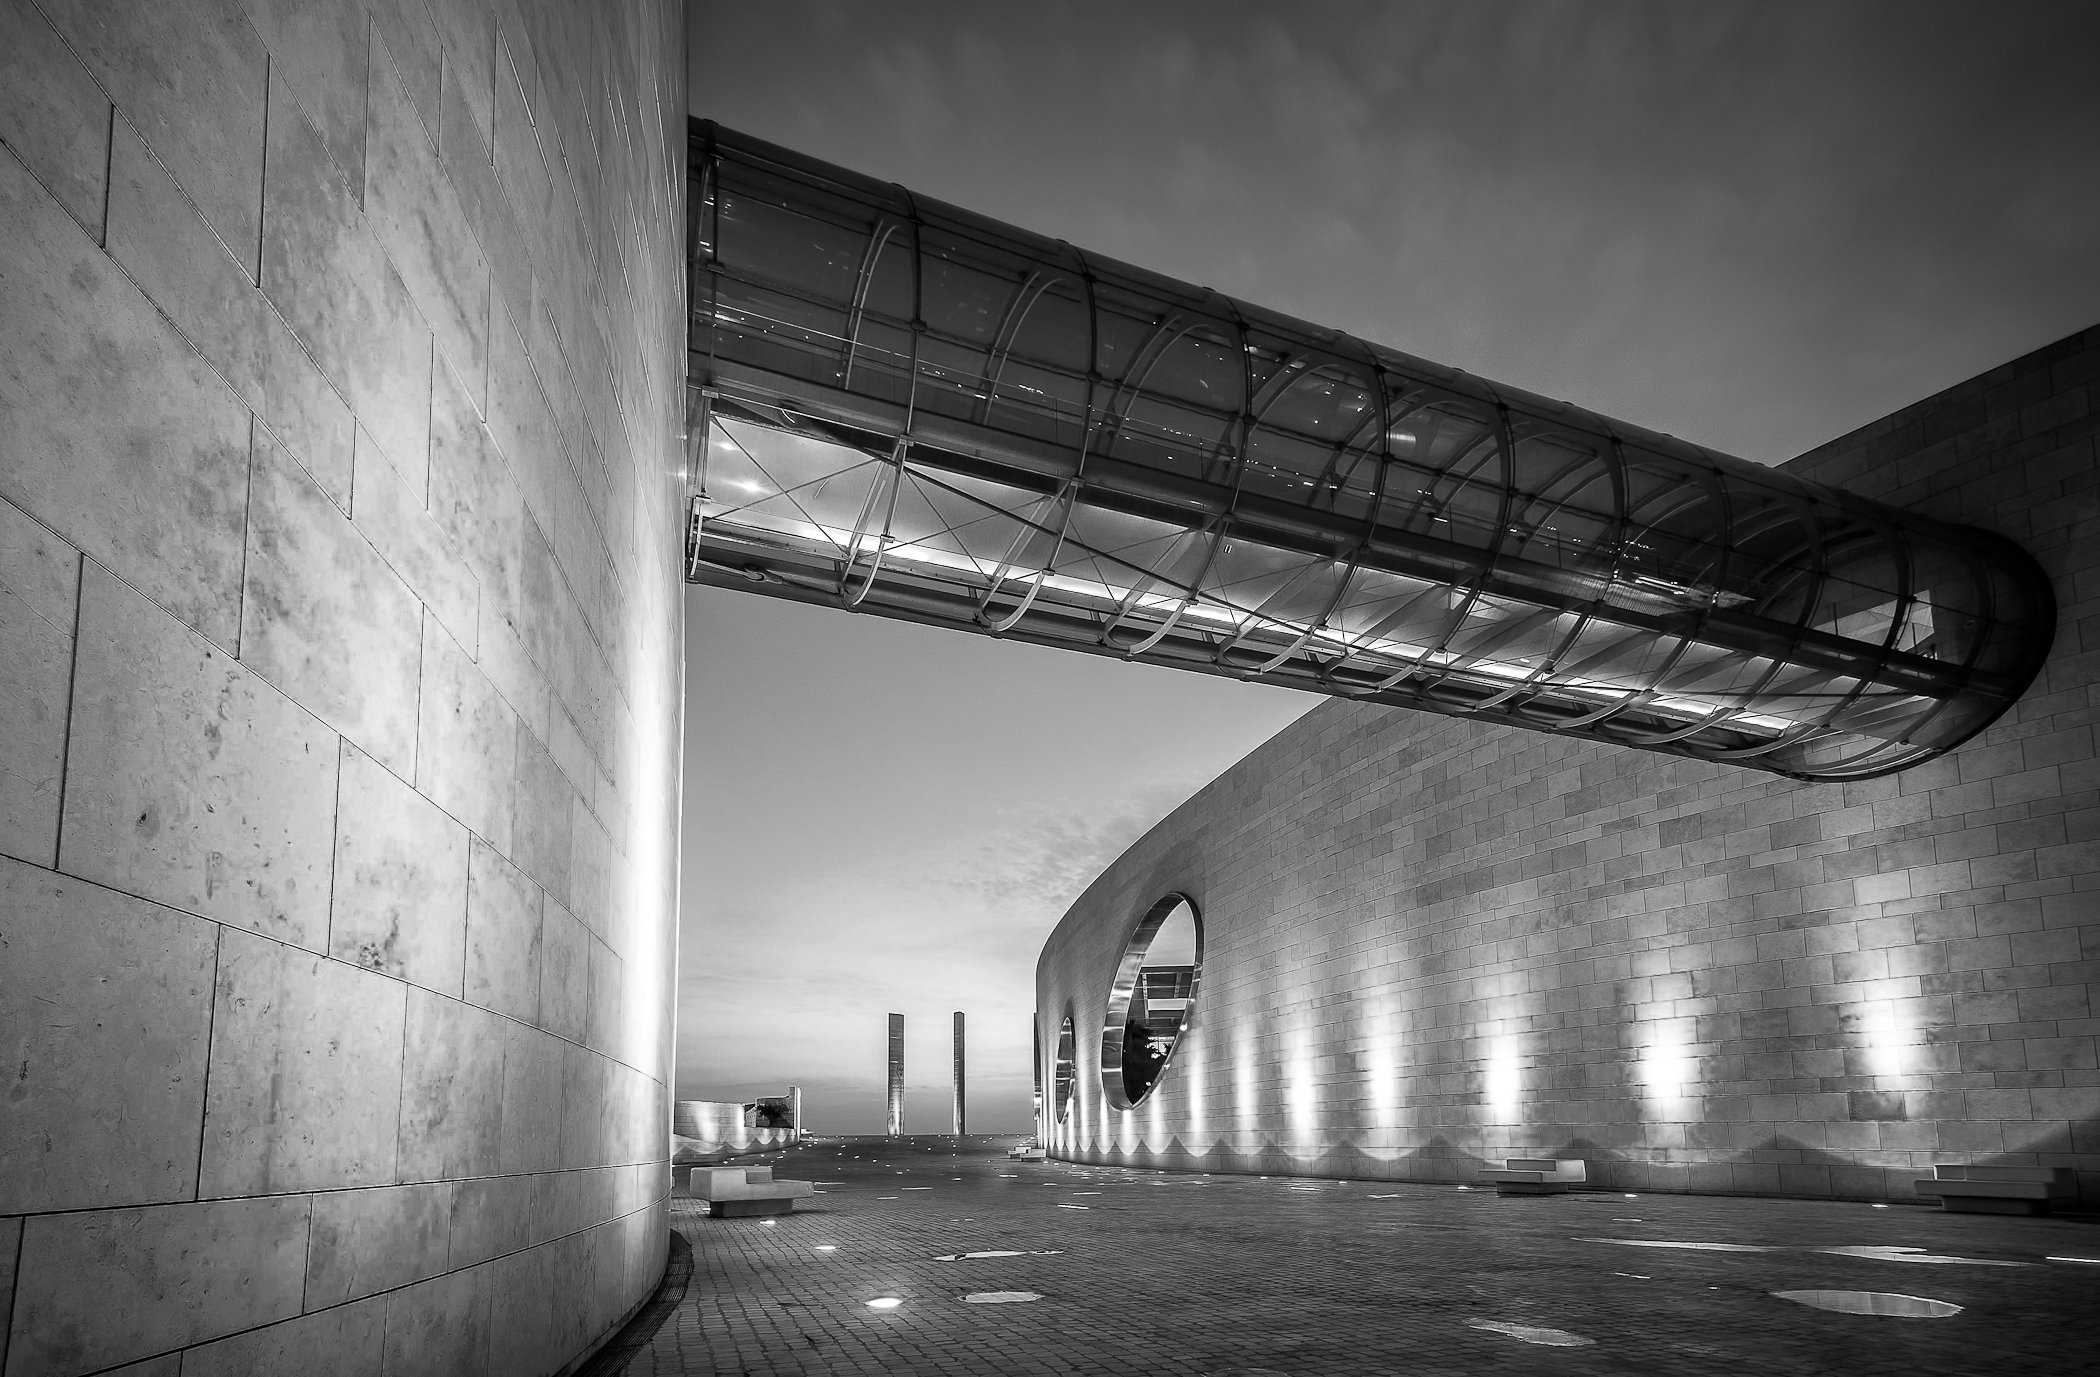 city, architecture, bnw, Lisbon, Portugal, night, lights, glass, metal, Antonio Bernardino